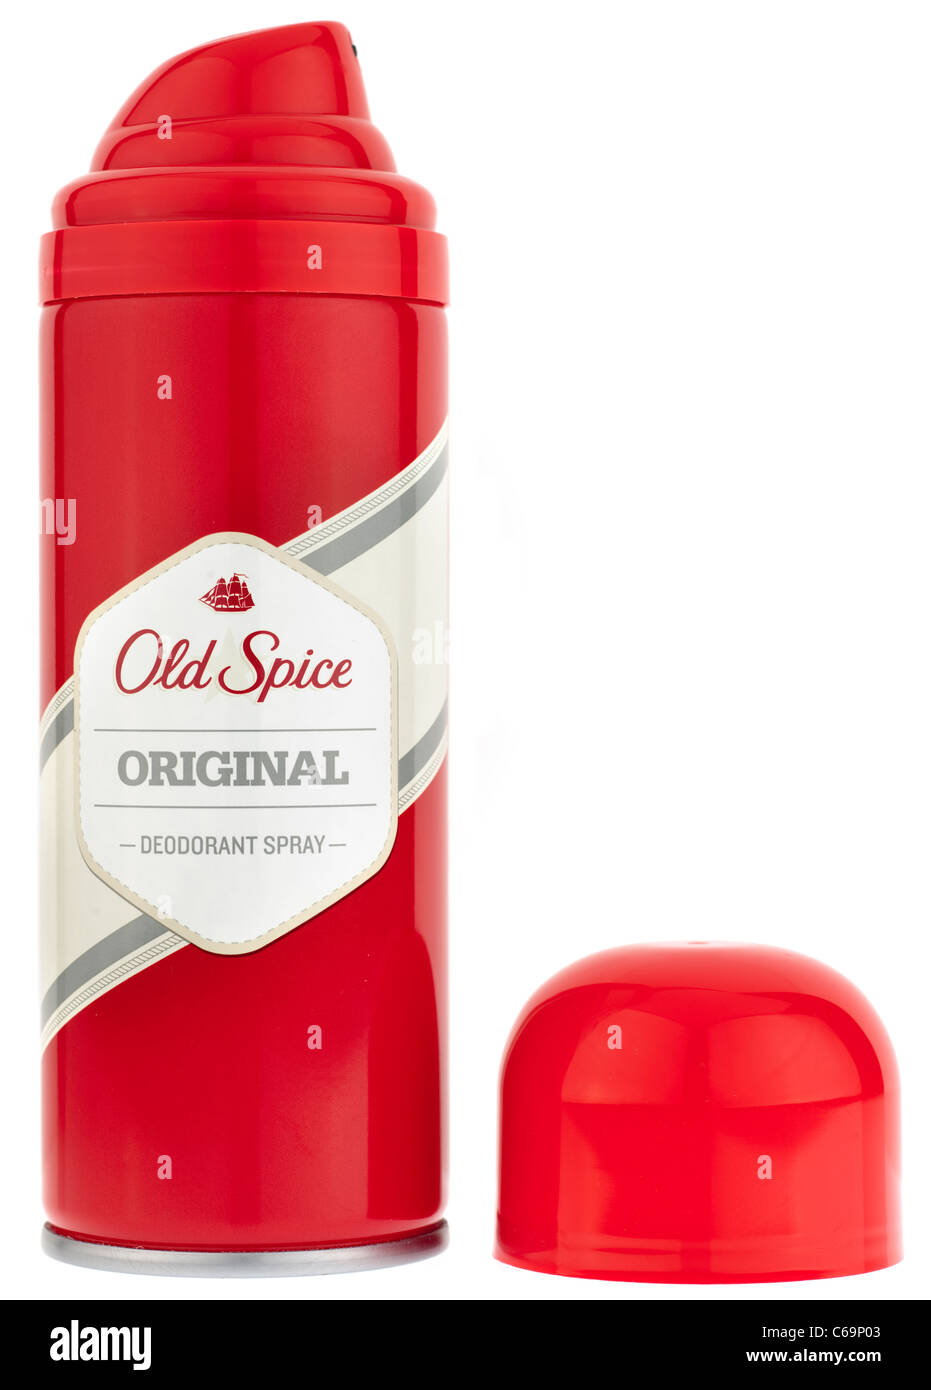 Old Spice original Deodorant spray - Stock Image